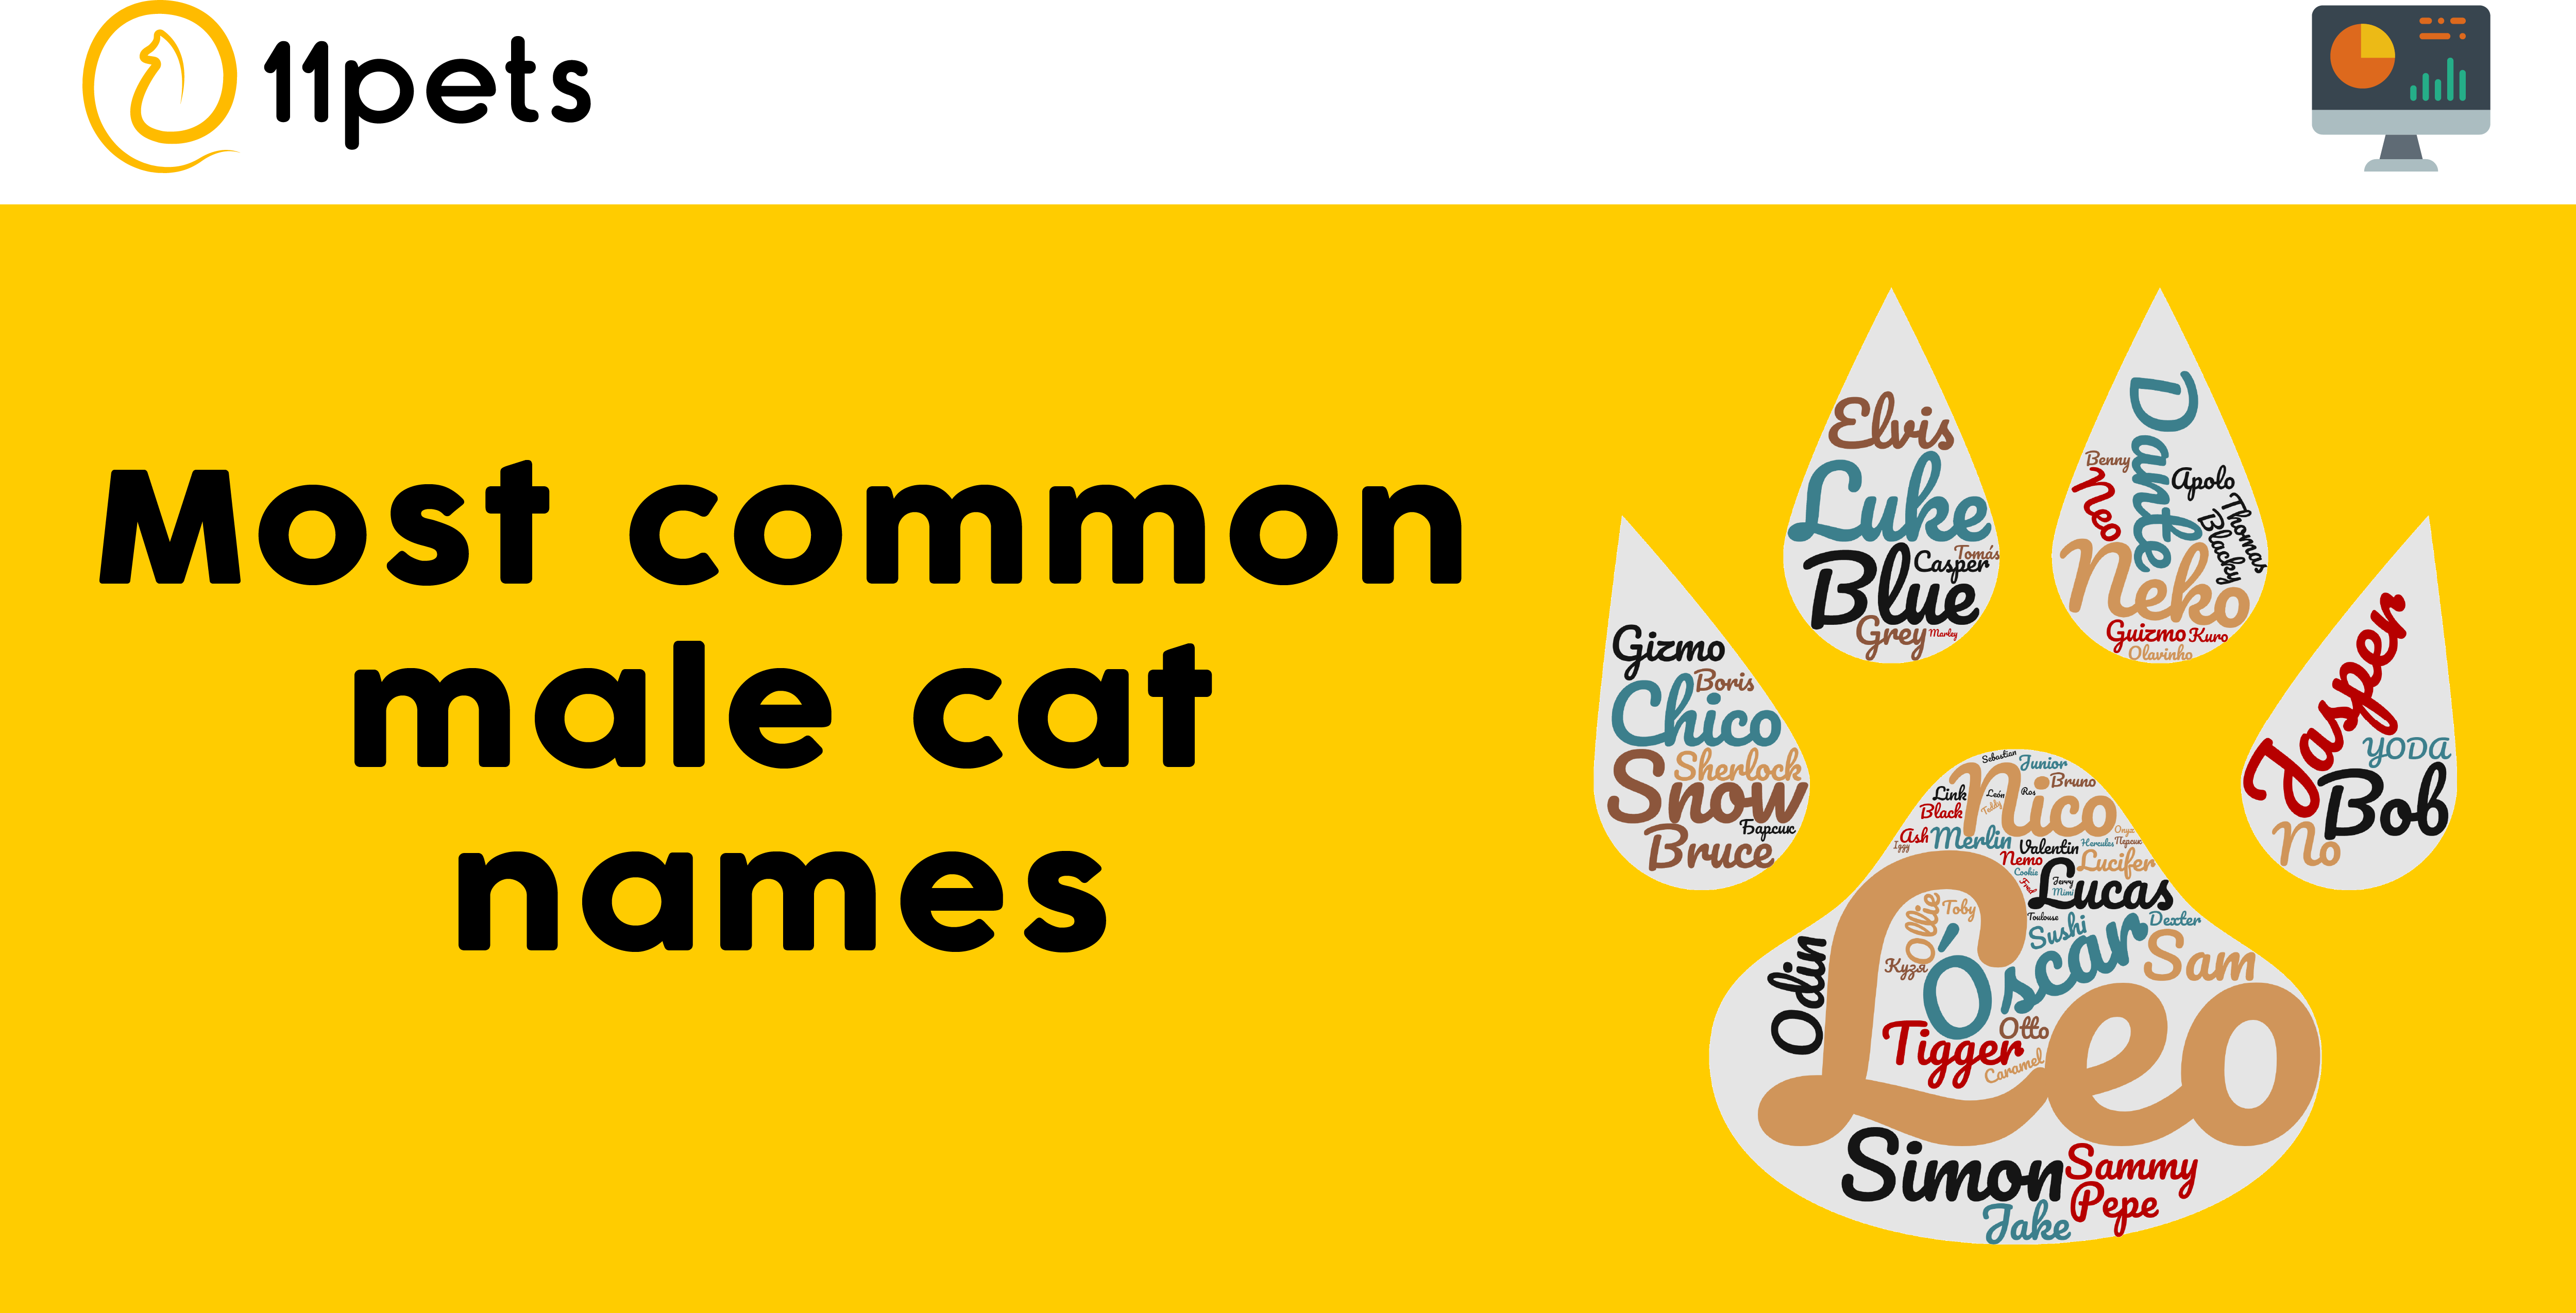 Most common male cat names